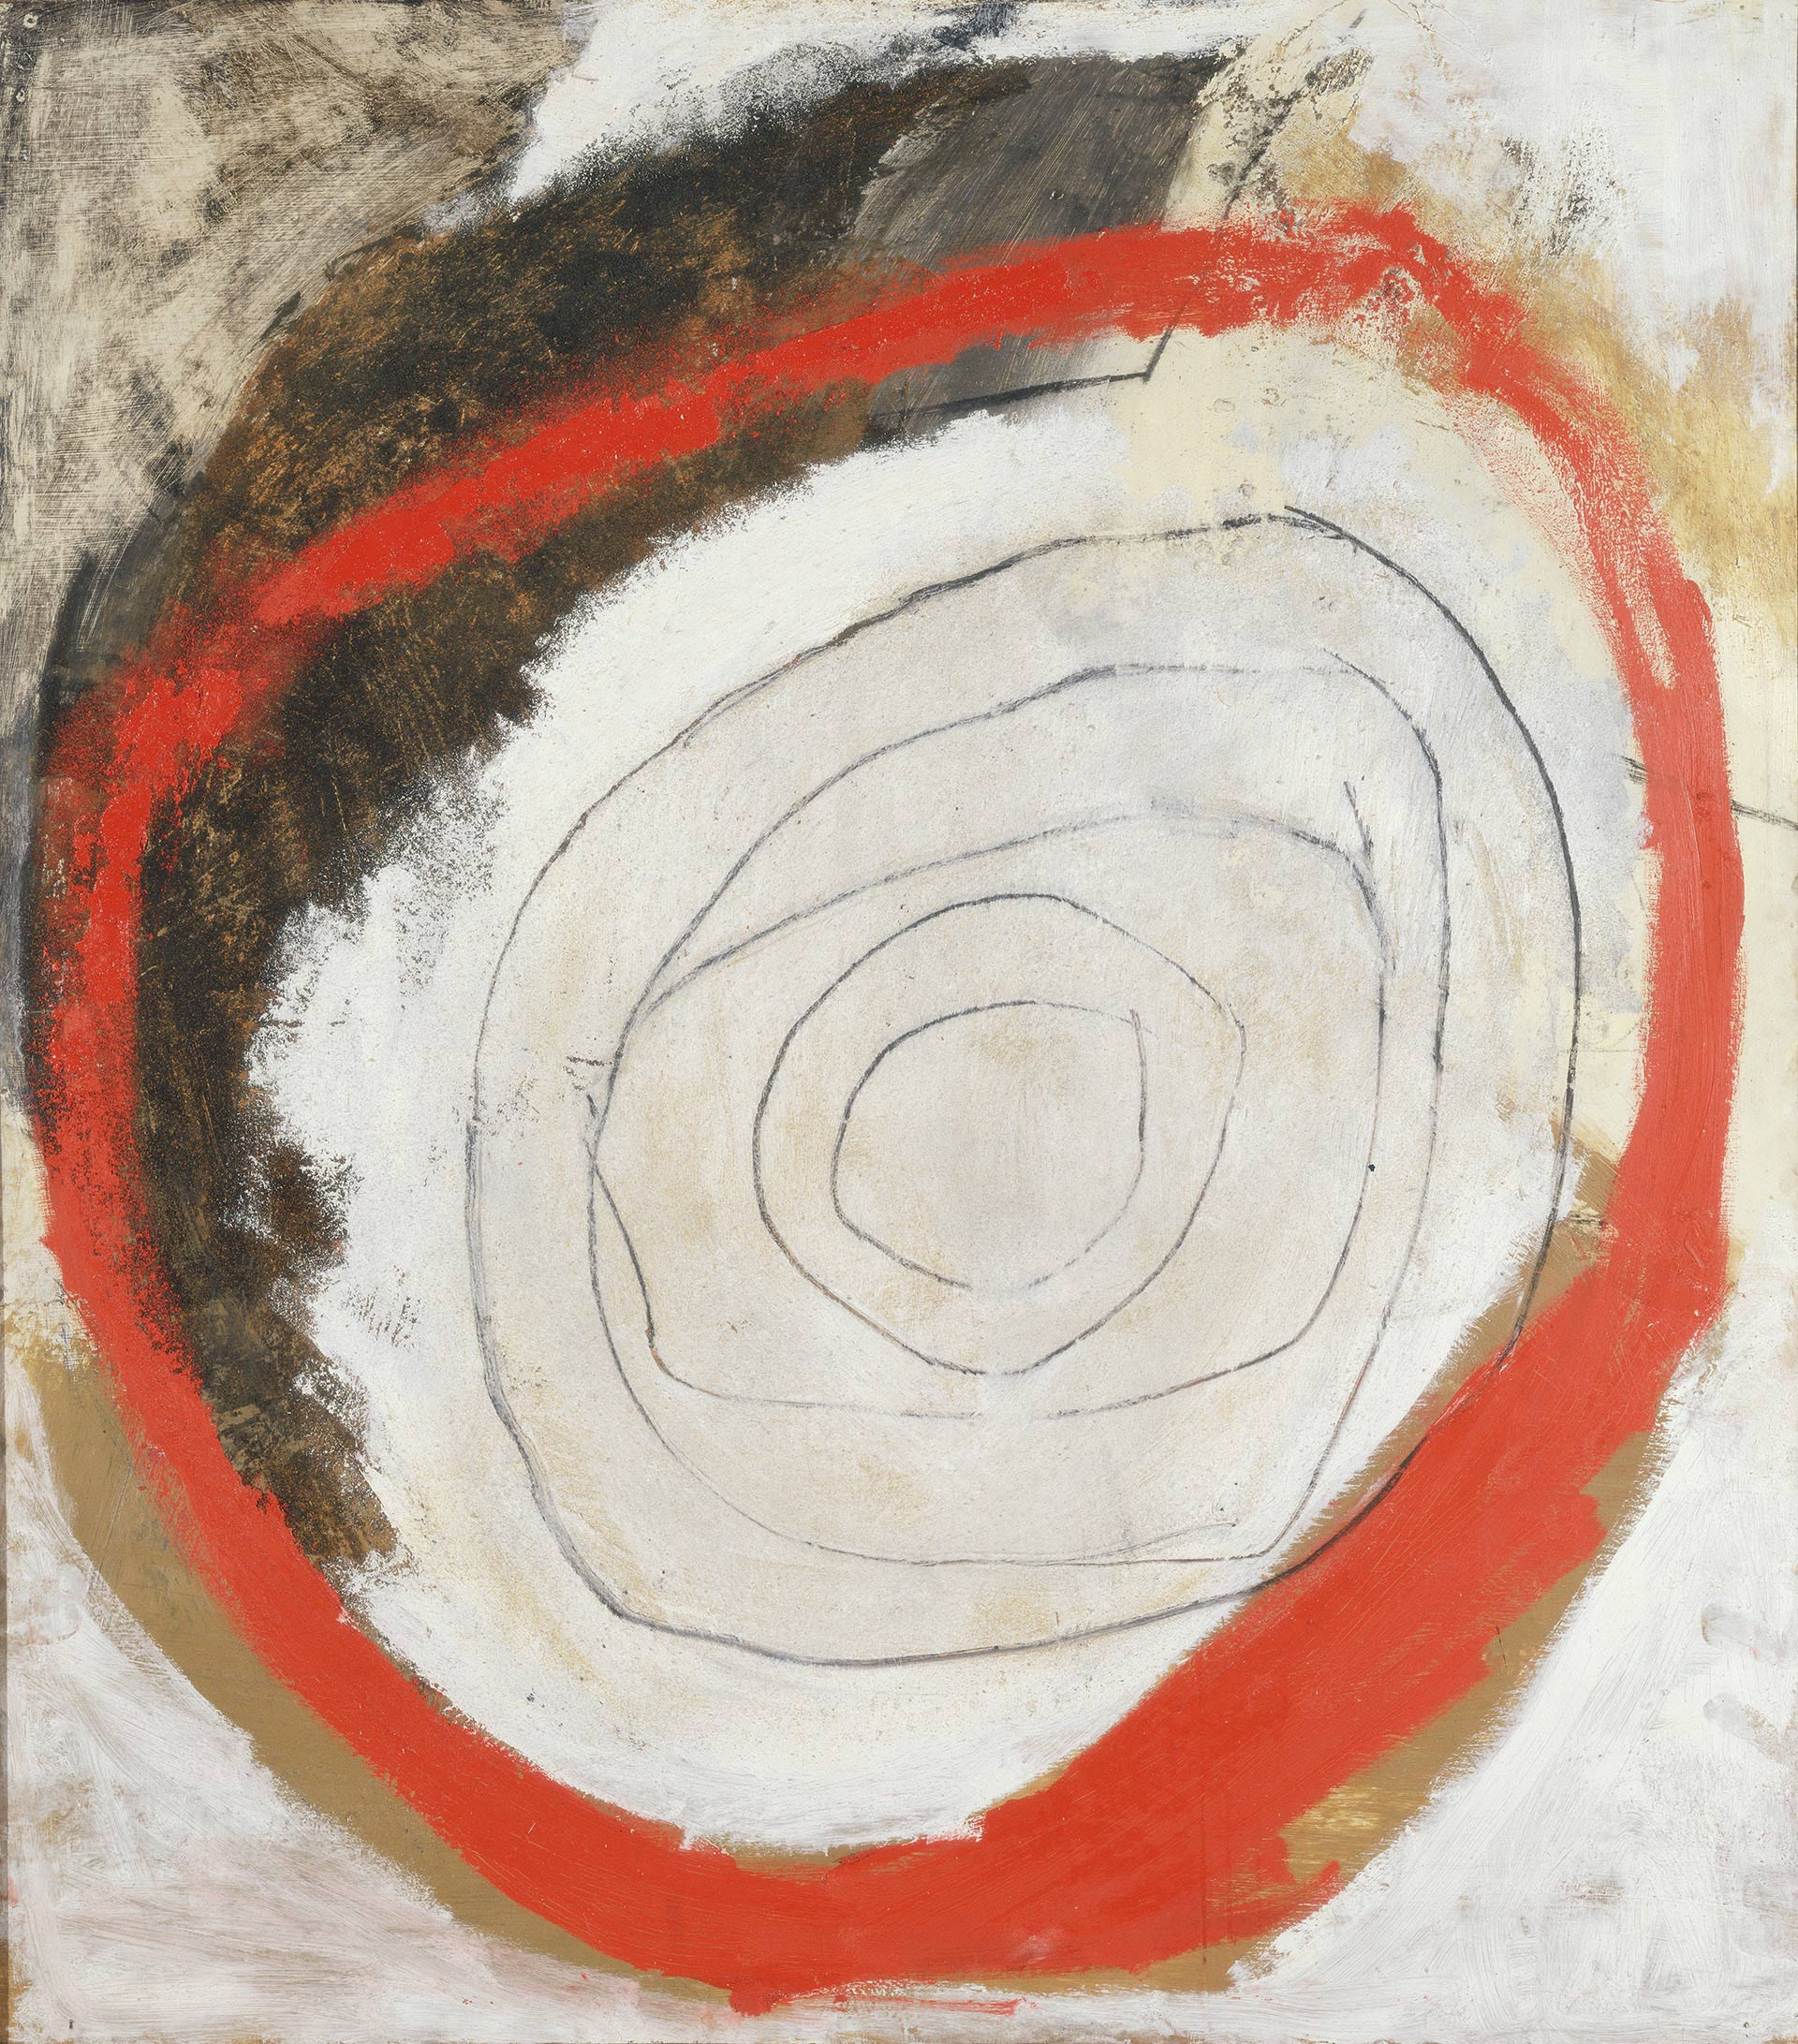 Sandra Blow, Red Circle, 1960, mixed media on board, Yale Center for British Art, Gift of Professor Carl Djerassi in homage to Diane Wood Middlebrook, Yale PhD, 1968, © The Sandra Blow Estate Partnership. All Rights Reserved, DACS, London / ARS, New York